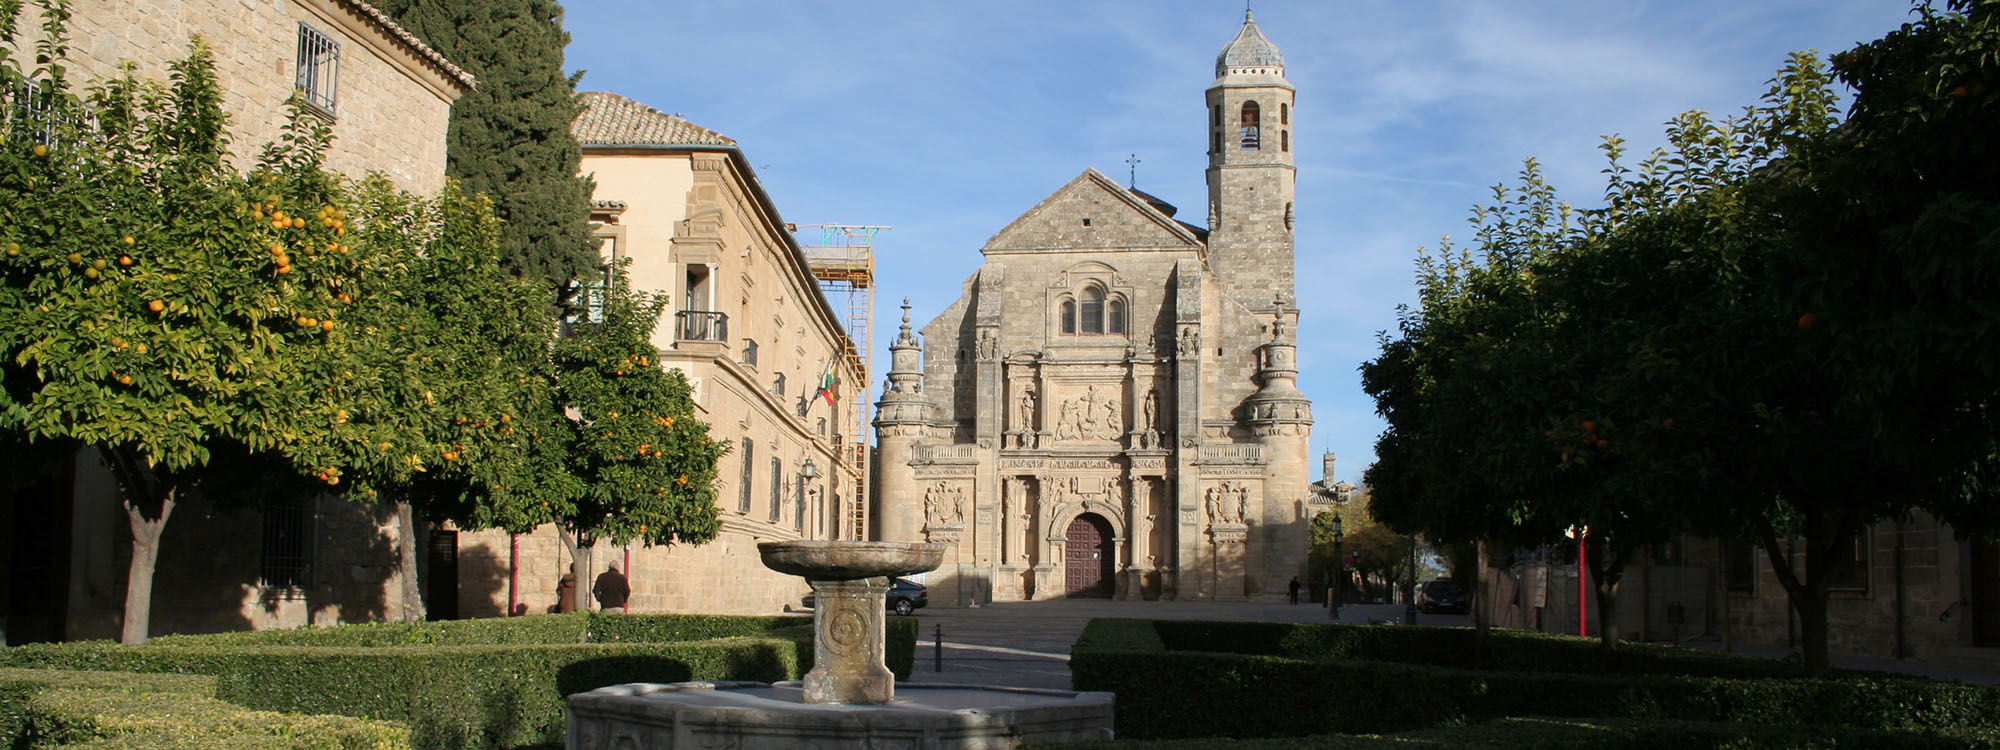 DAY 9: REINAISSANCE UBEDA AND SYNAGOGUE OF THE WATER